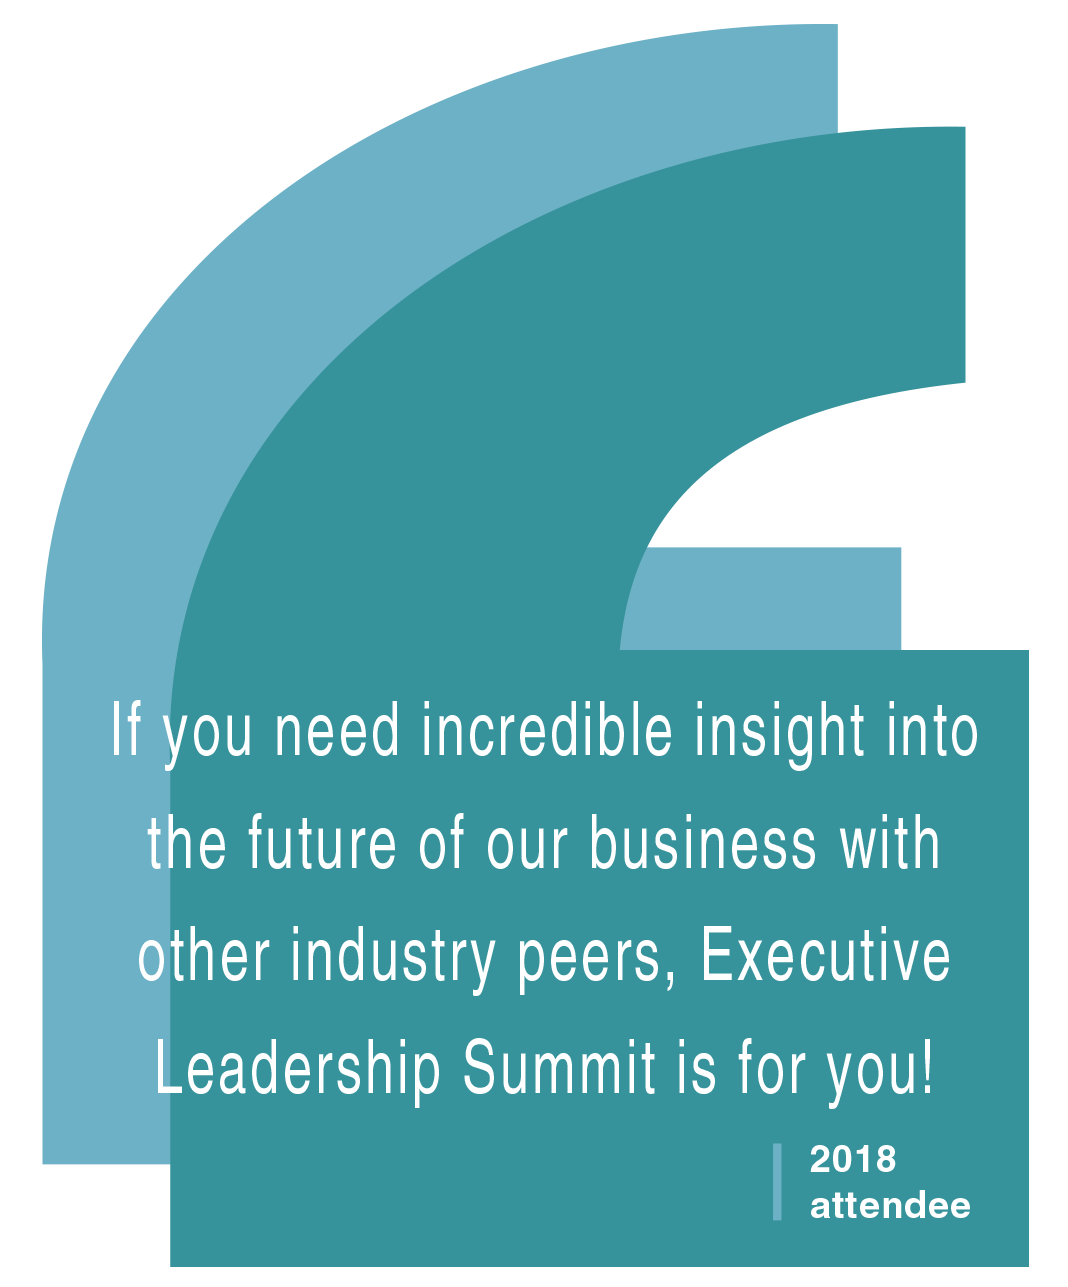 if you need incredible insight into the future of our business with other industry peers executive leadership summit is for you